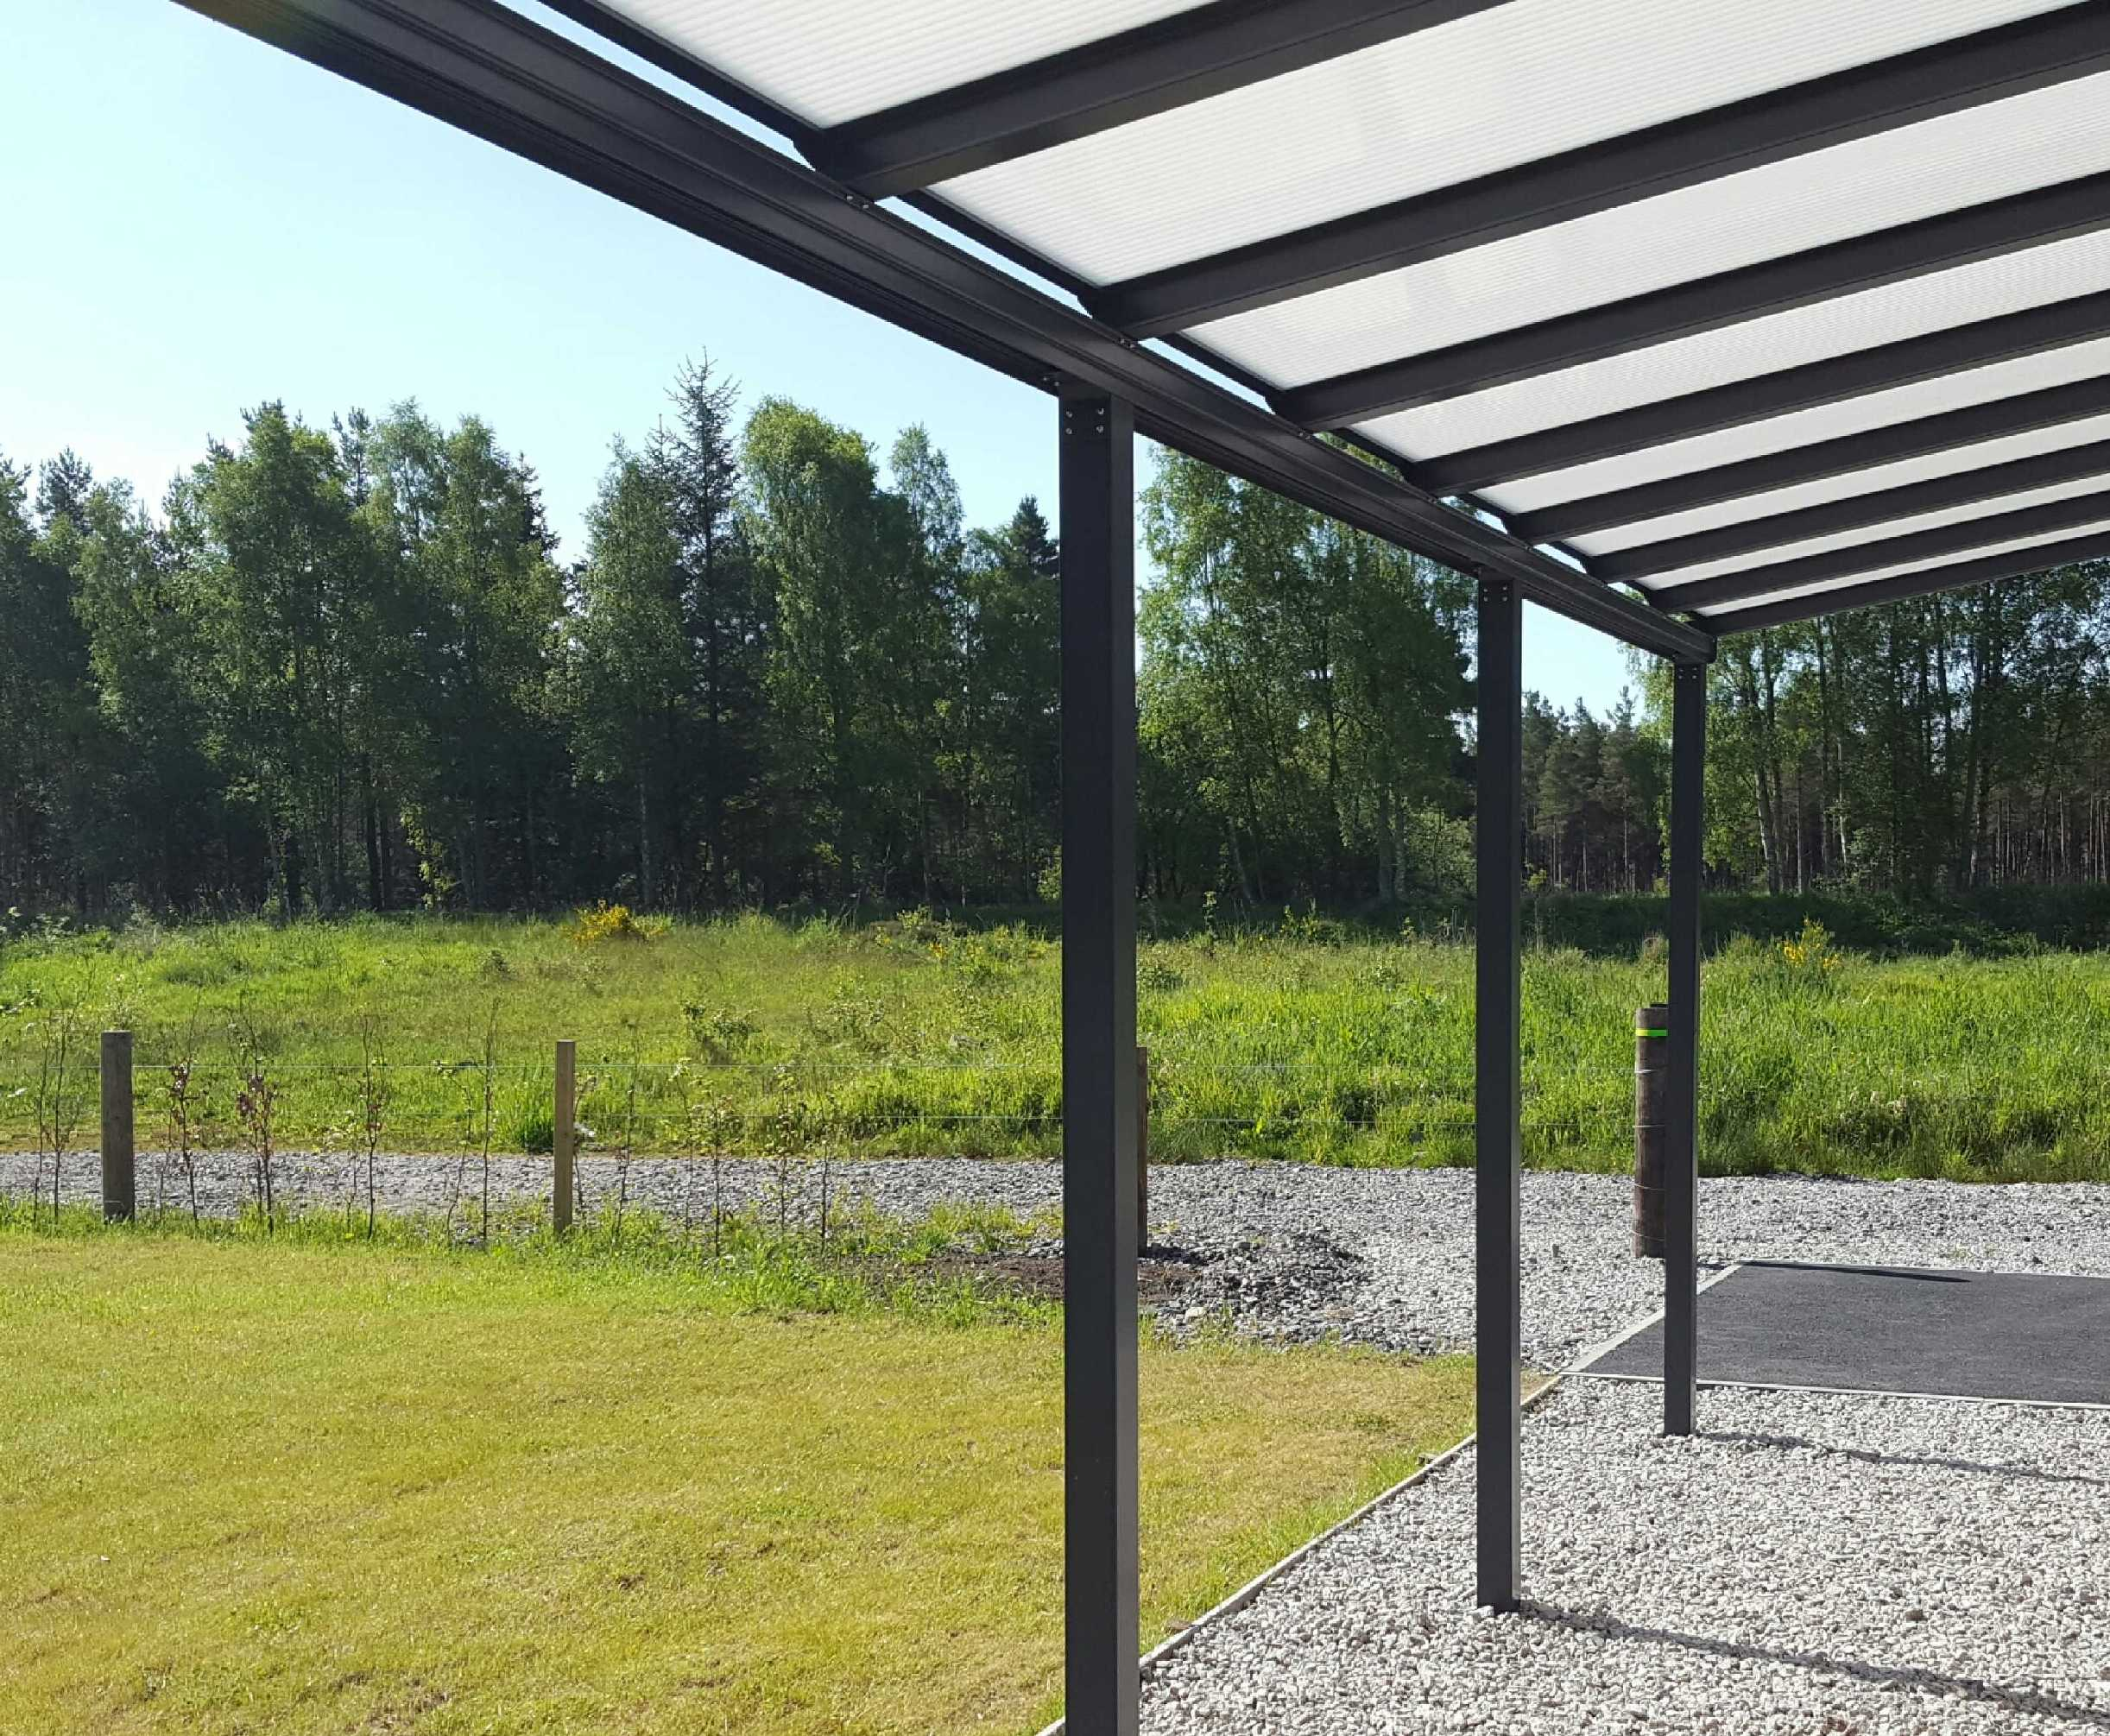 Omega Smart Lean-To Canopy, Anthracite Grey, 16mm Polycarbonate Glazing - 5.2m (W) x 1.5m (P), (3) Supporting Posts